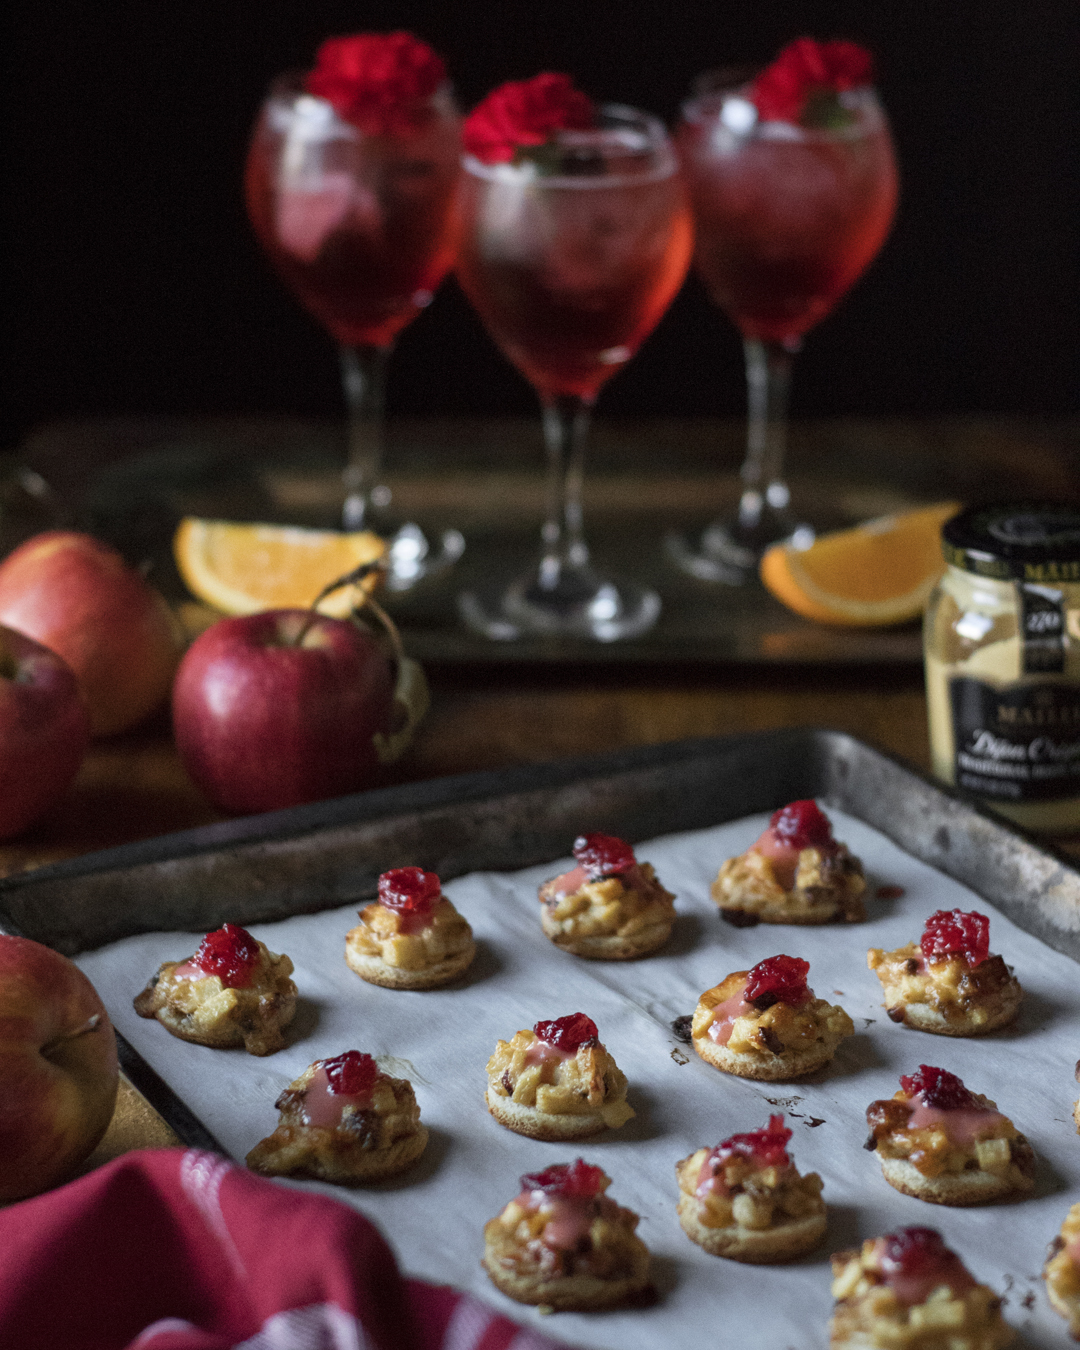 maille mustard hors d'oeuvres and campari cranberry spritzes